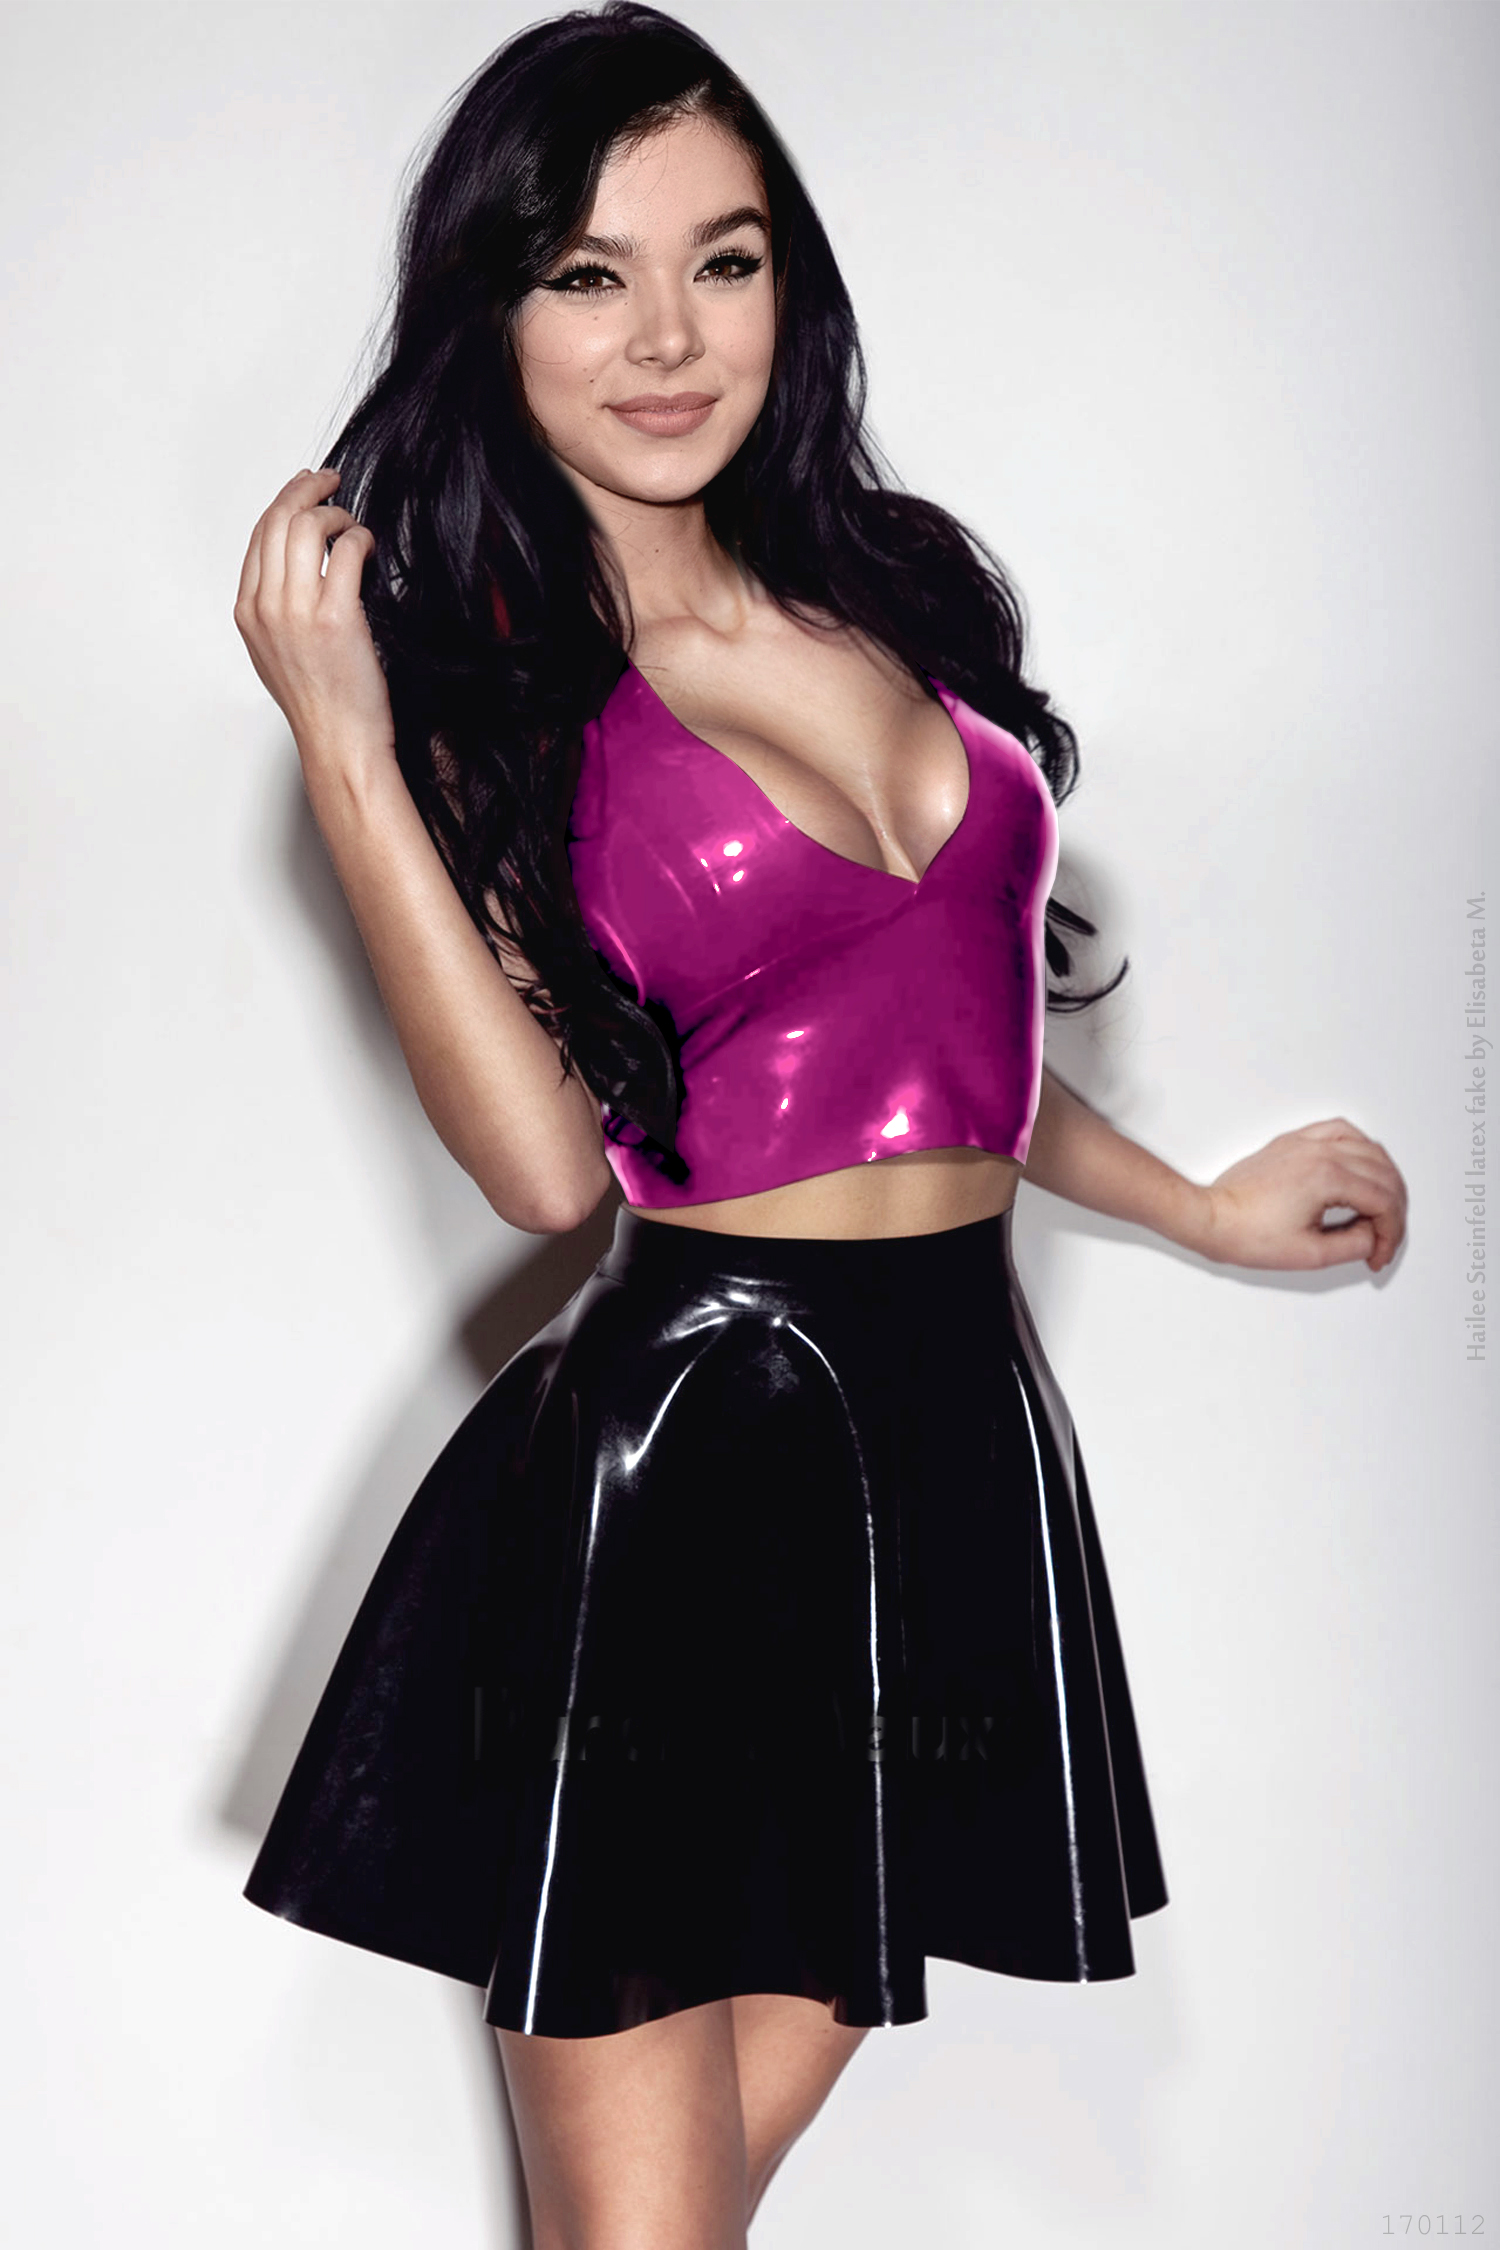 keira knightley wallpaper download